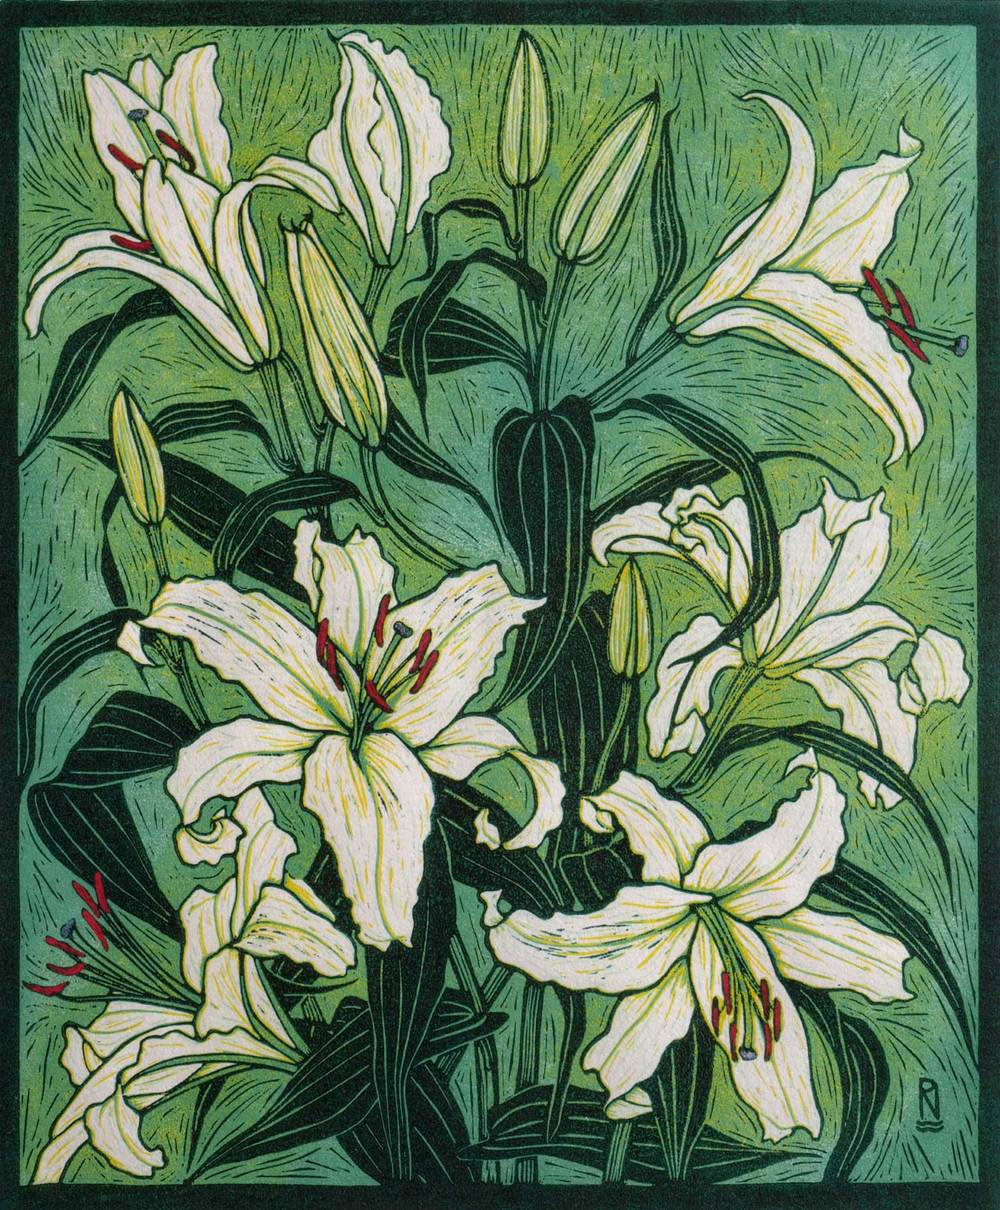 oriental-lily-reduction-linocut-rachel-newling.jpg